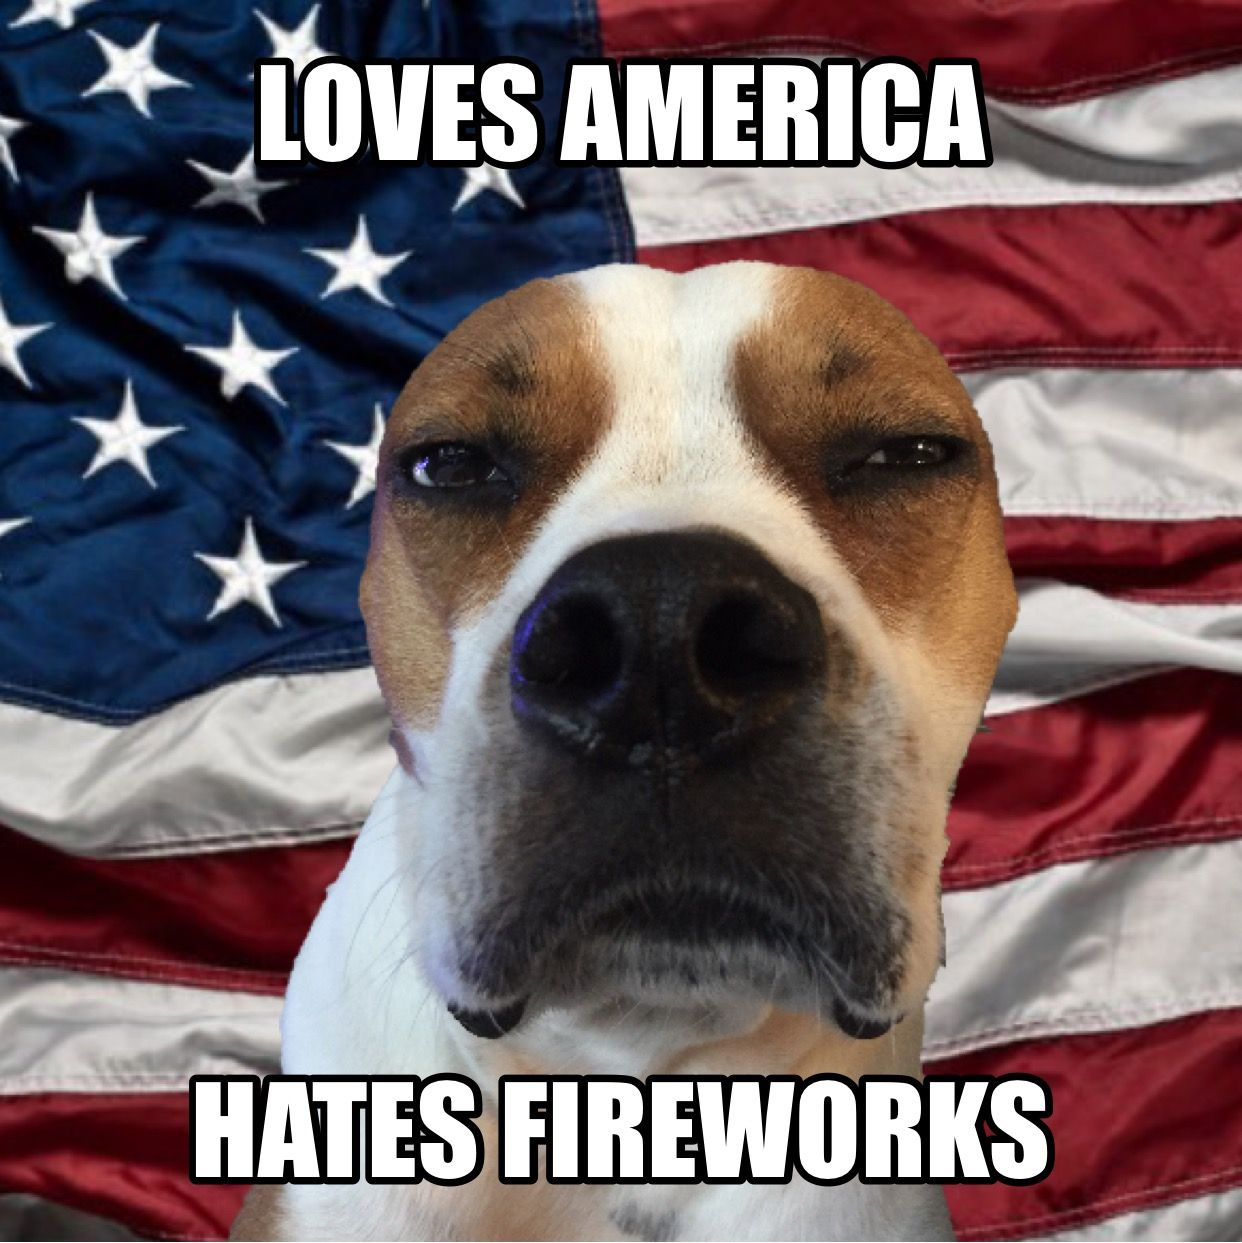 Can T We Just Celebrate With Cake Loves America Hates Fireworks Chewiesteve Adoptdontshop Chewslife Dogs And Fireworks Pitbull Dog Dog Memes